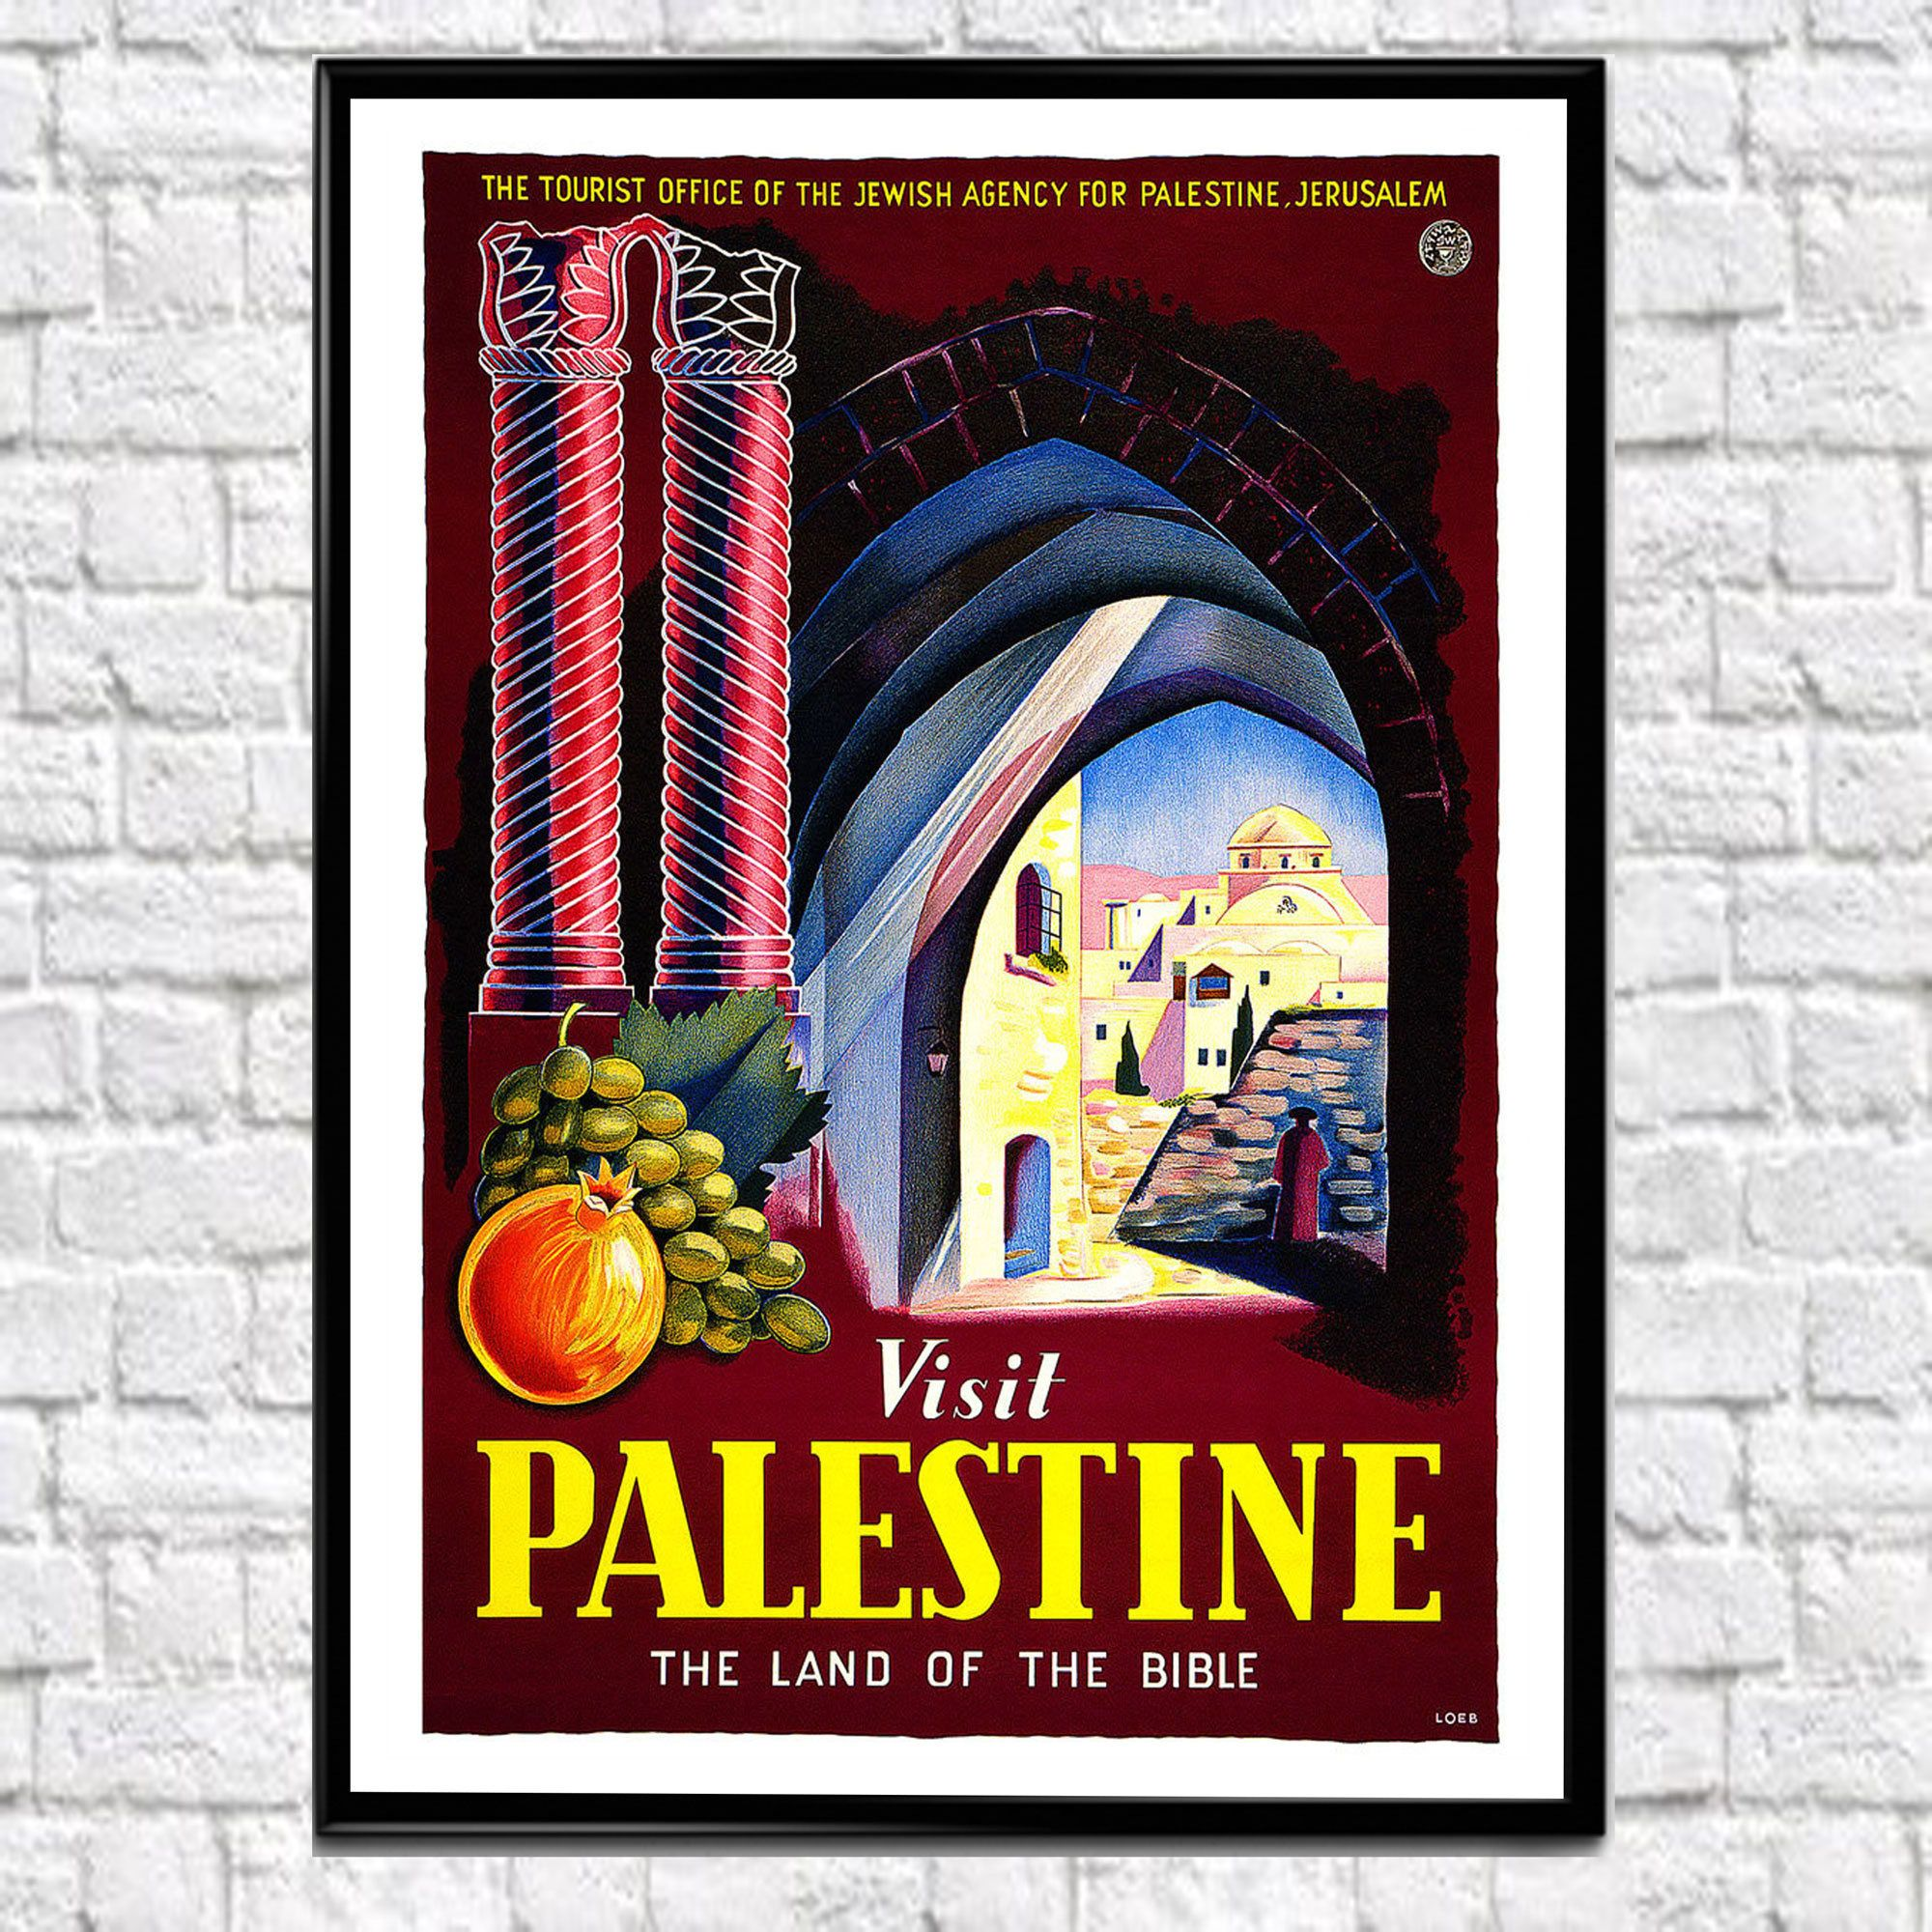 Tourism Poster Palestine Travel Poster Middle East Poster Middle Eastern